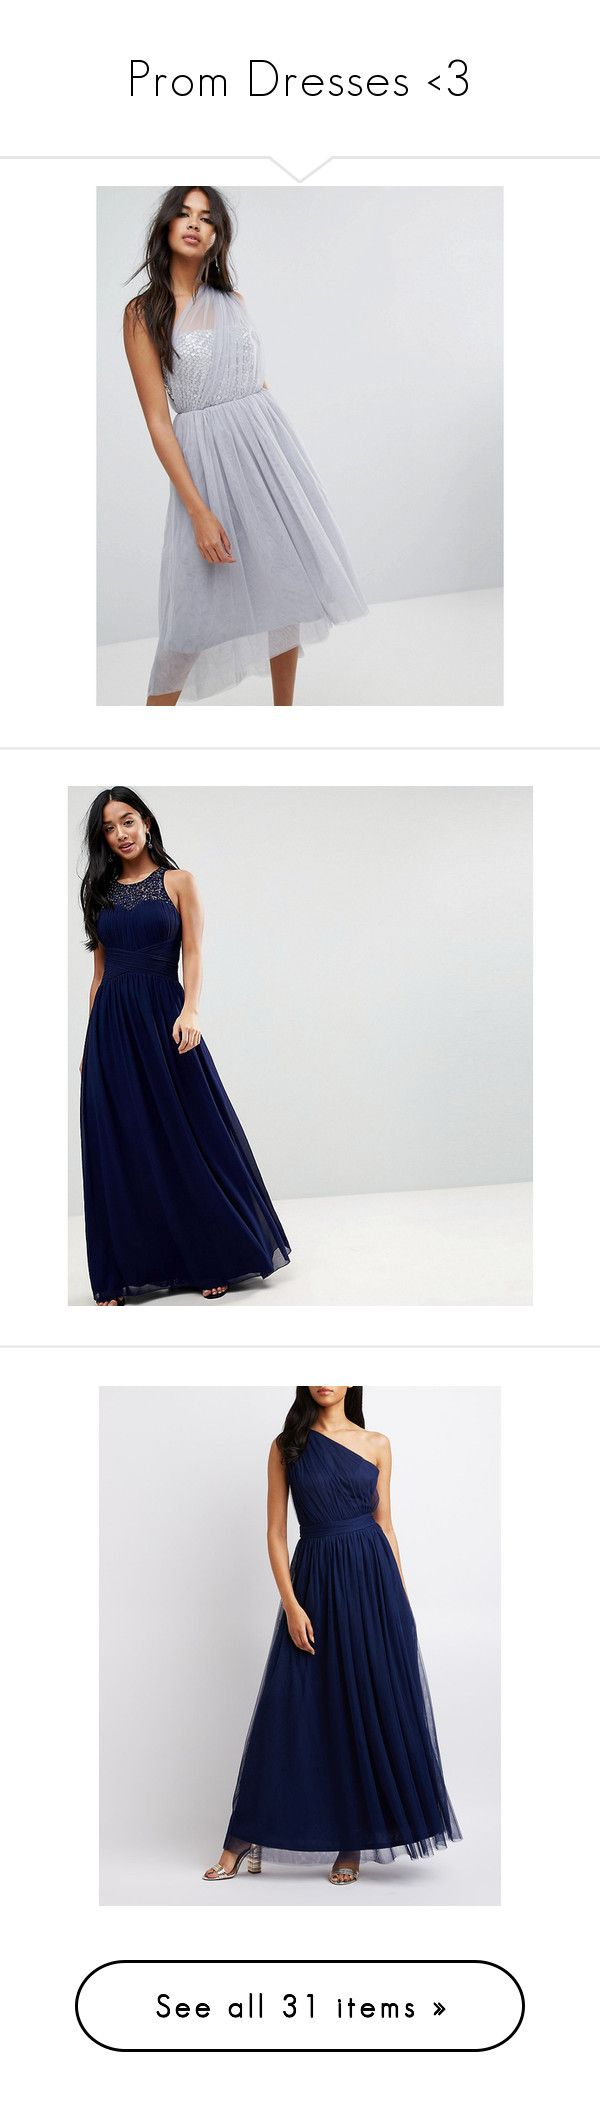 """""""Prom Dresses <3"""" by laurengallop ❤ liked on Polyvore featuring dresses, grey, grey cocktail dress, cocktail prom dress, hi lo dresses, midi dress, hi low prom dresses, navy, petite and petite cocktail dress"""